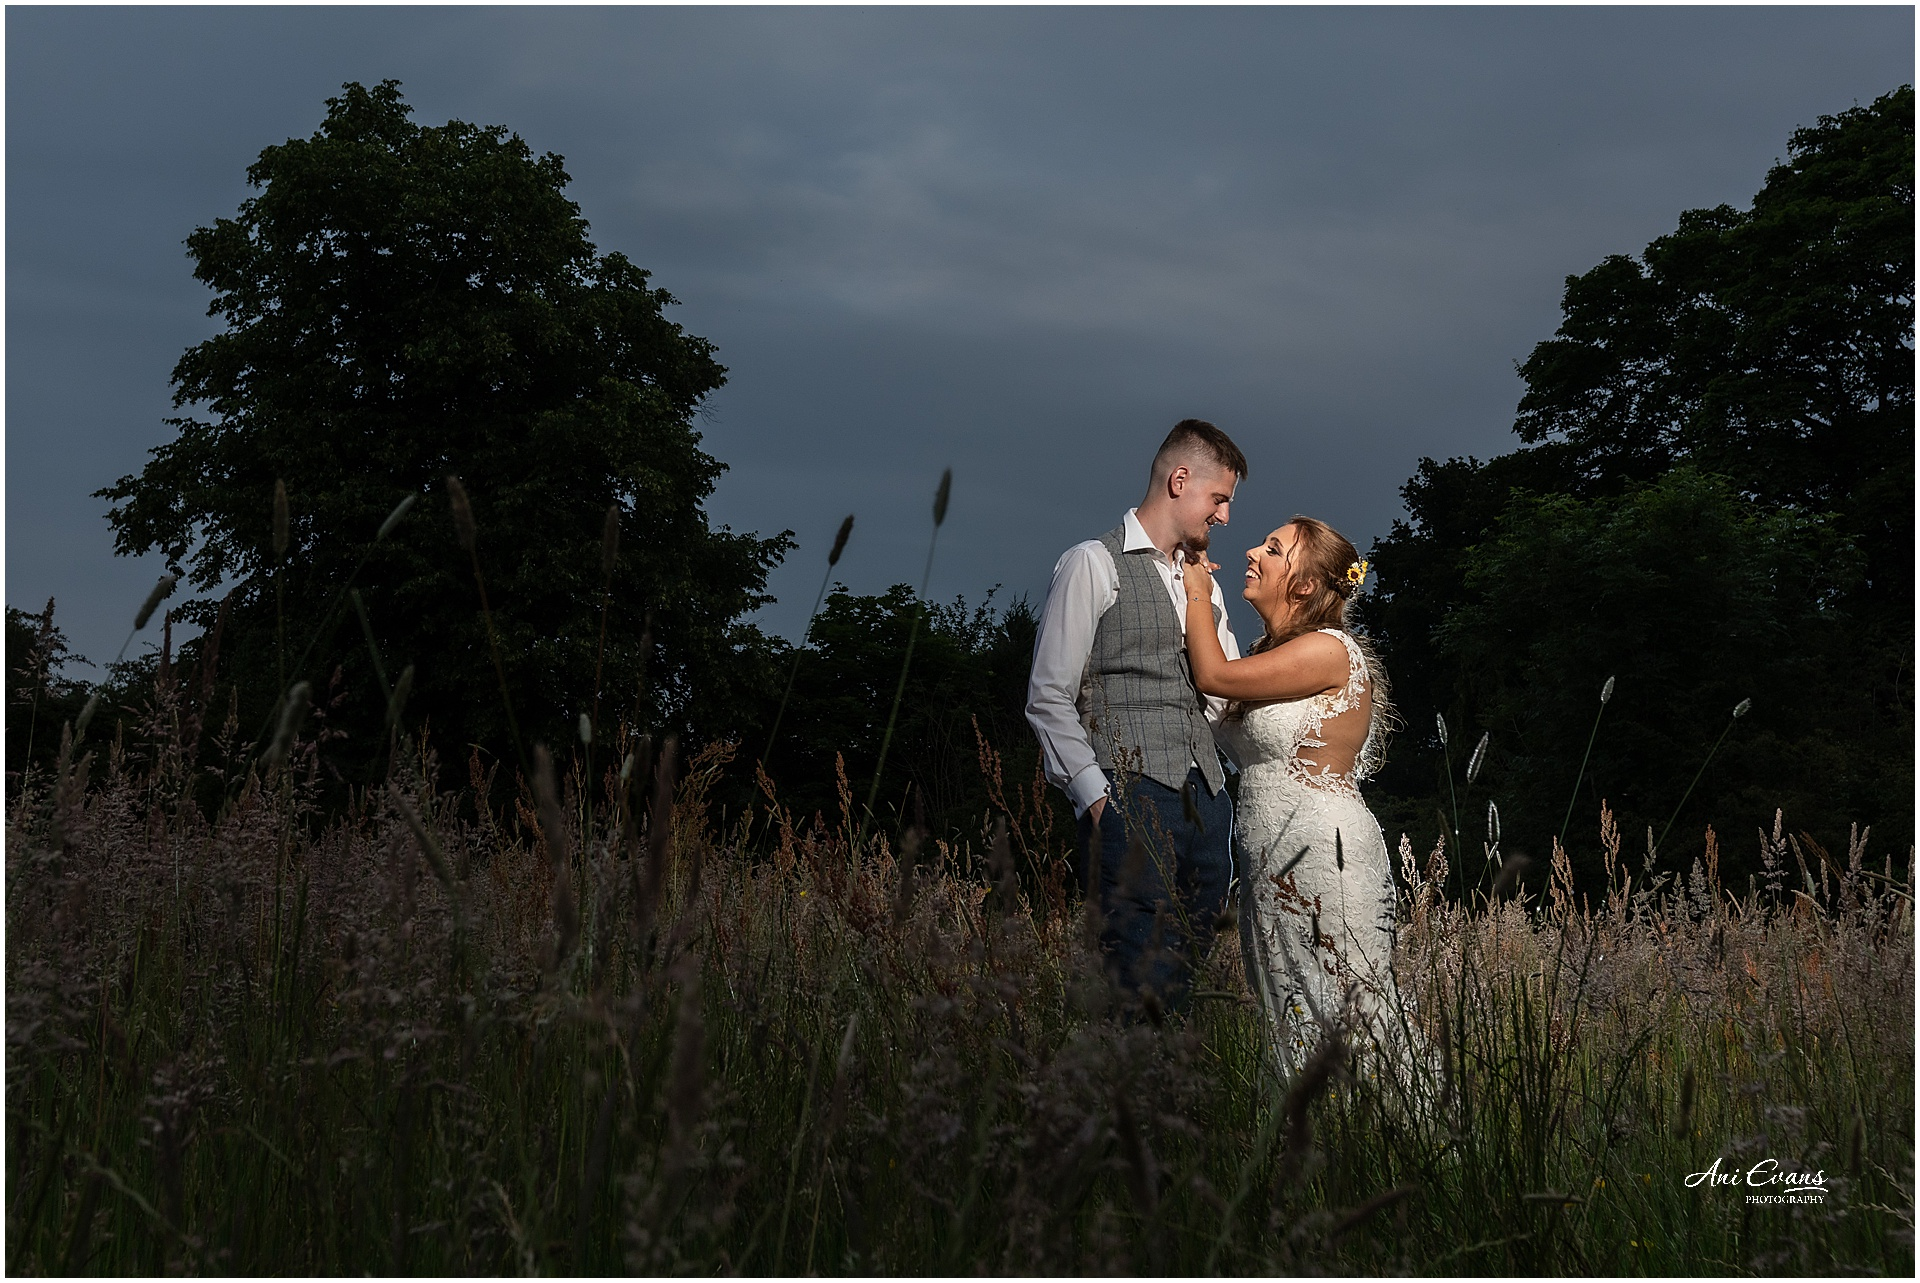 Bride and groom at Dunchurch Park at sunset time